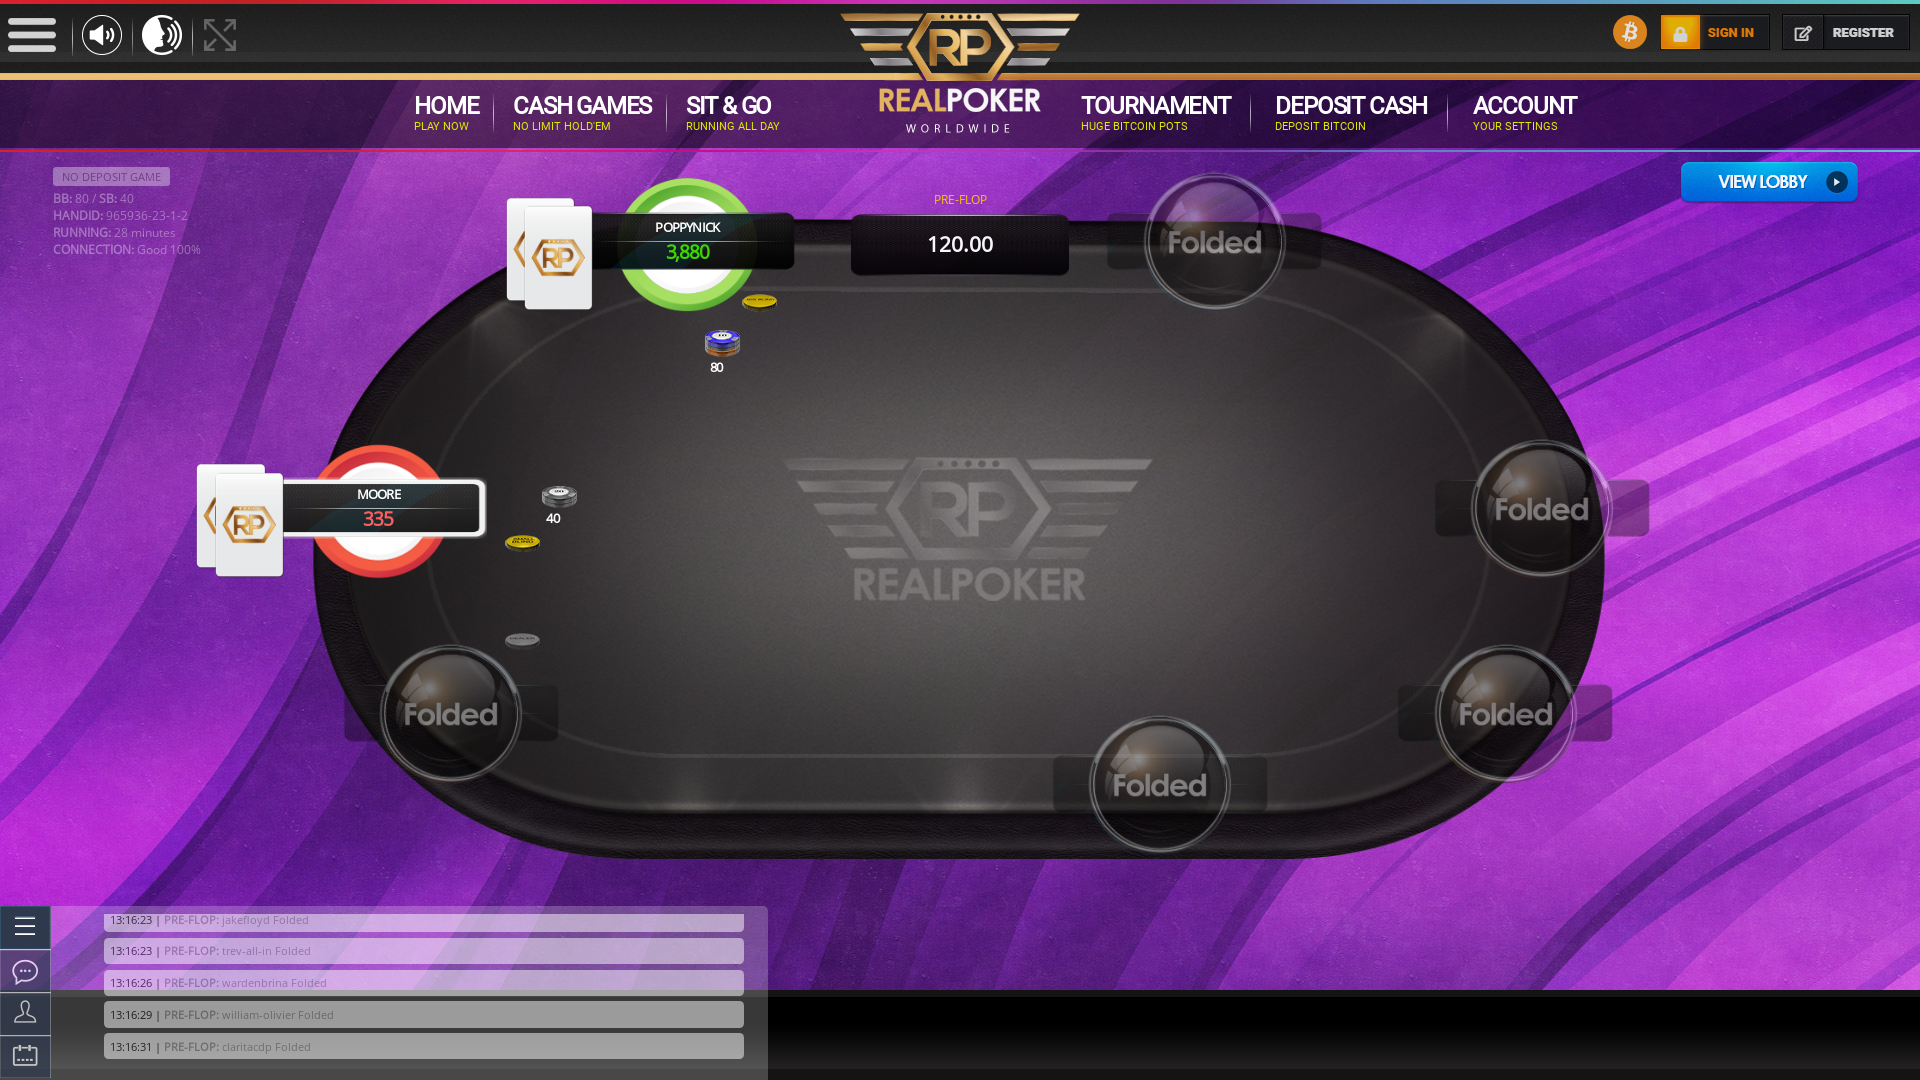 Mexico online poker game on a 10 player table in the 28th minute of the game